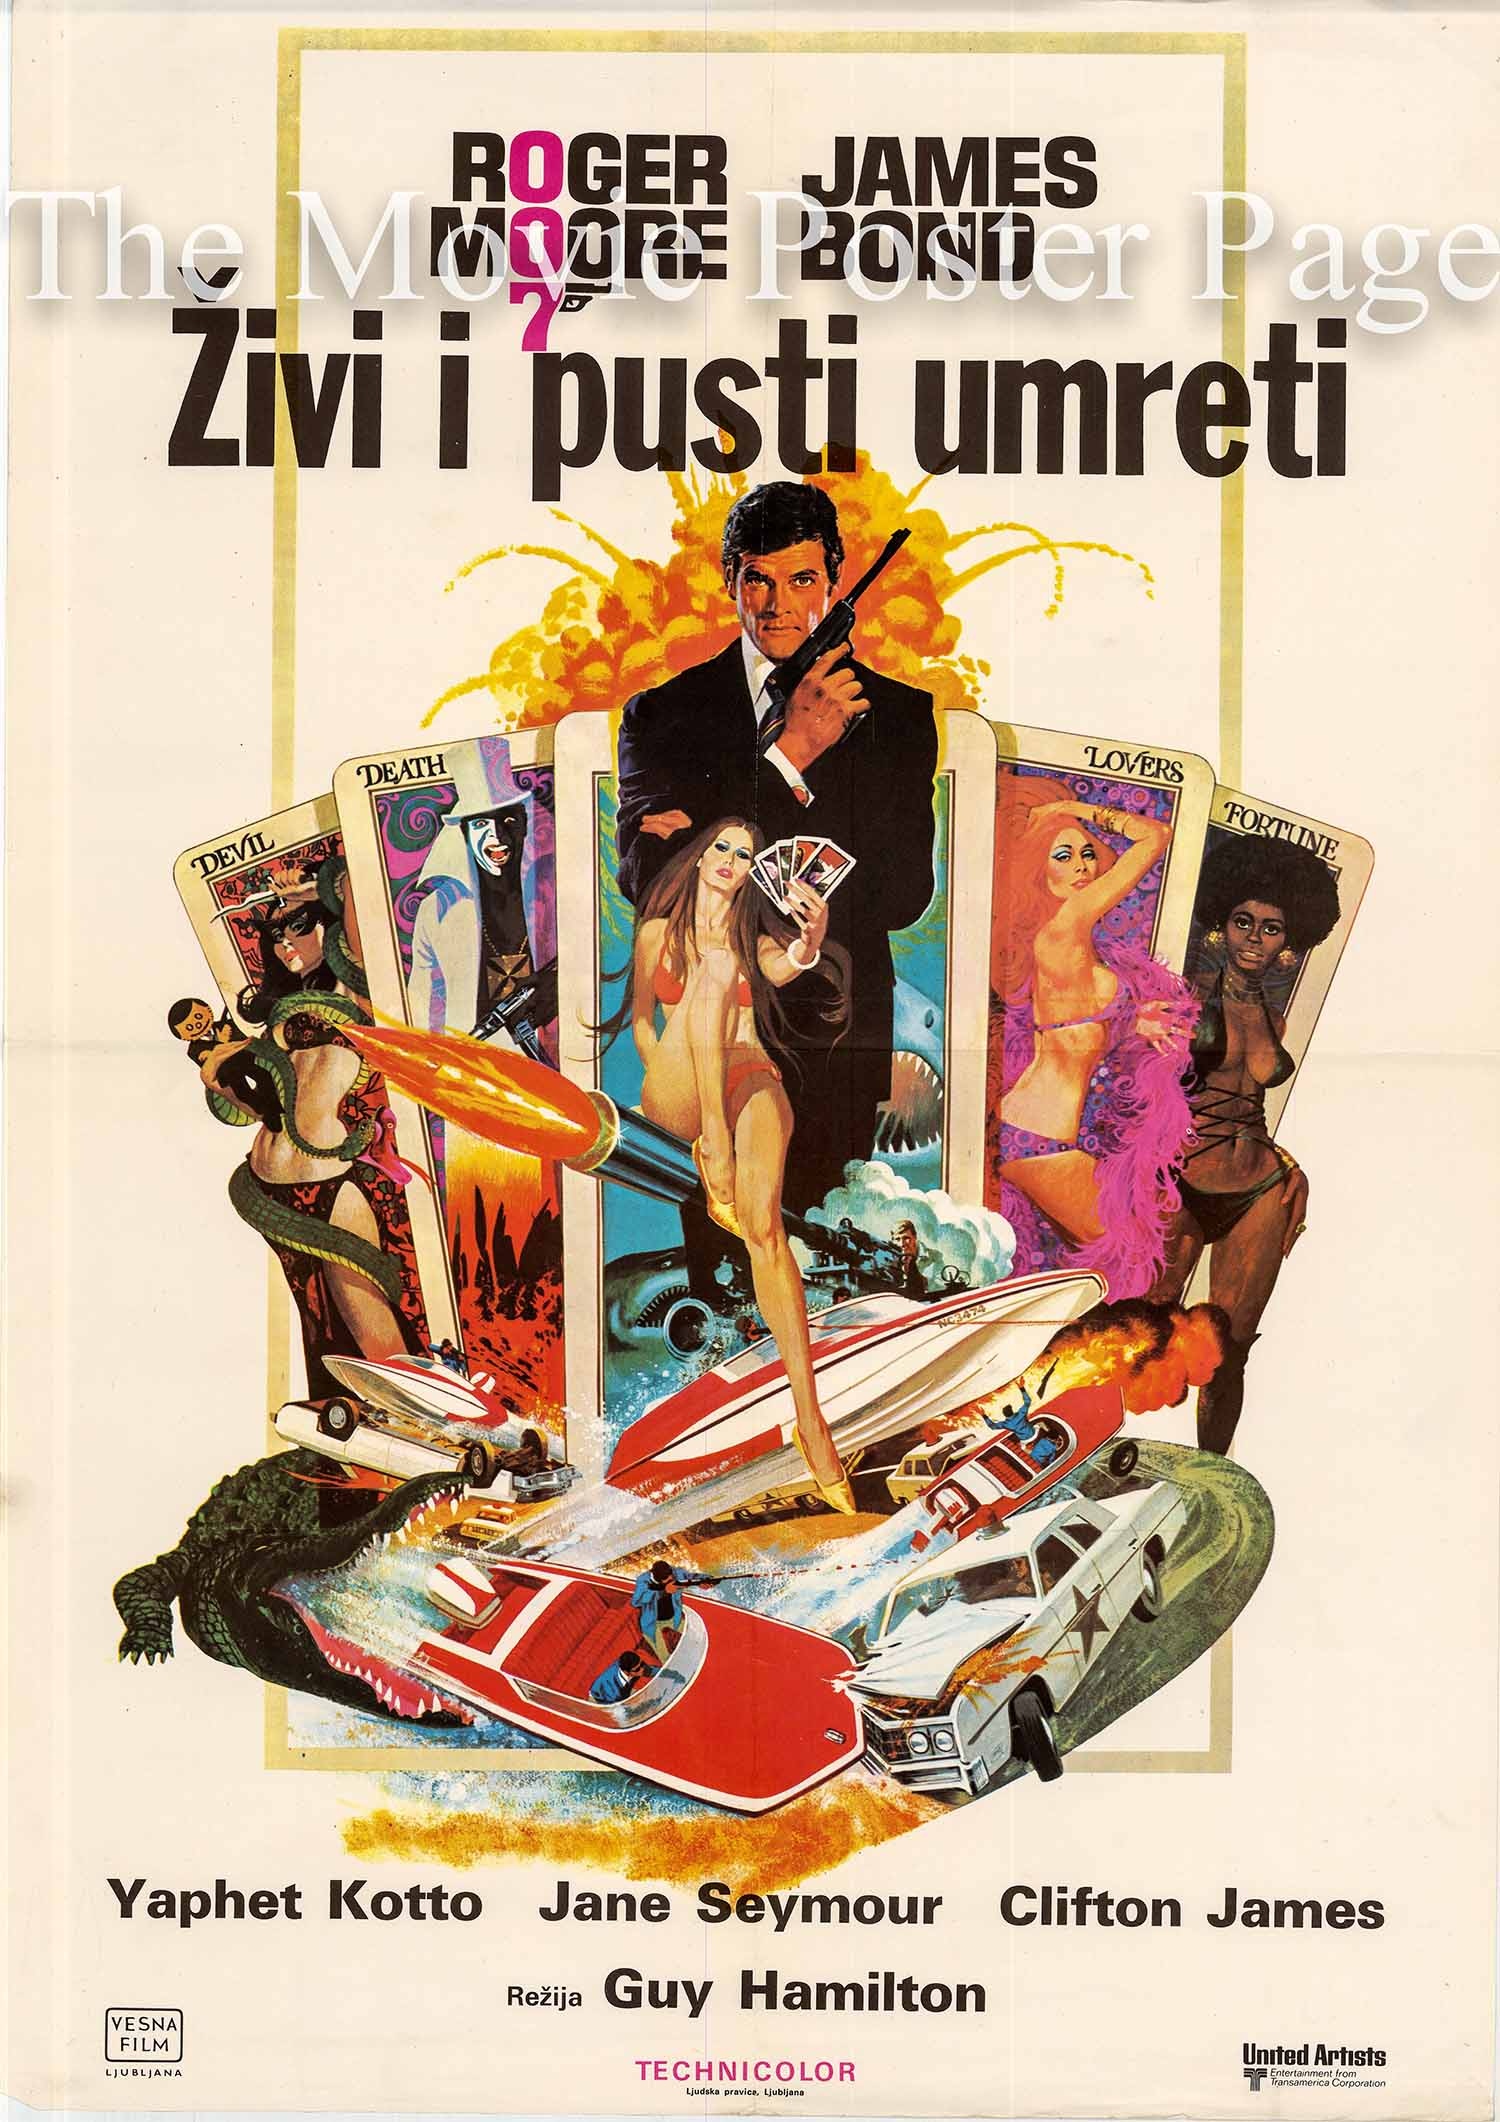 Pictured is a Yugoslavian promotional poster for the 1973 Guy Hamilton film Live and Let Die starring Roger Moore as James Bond